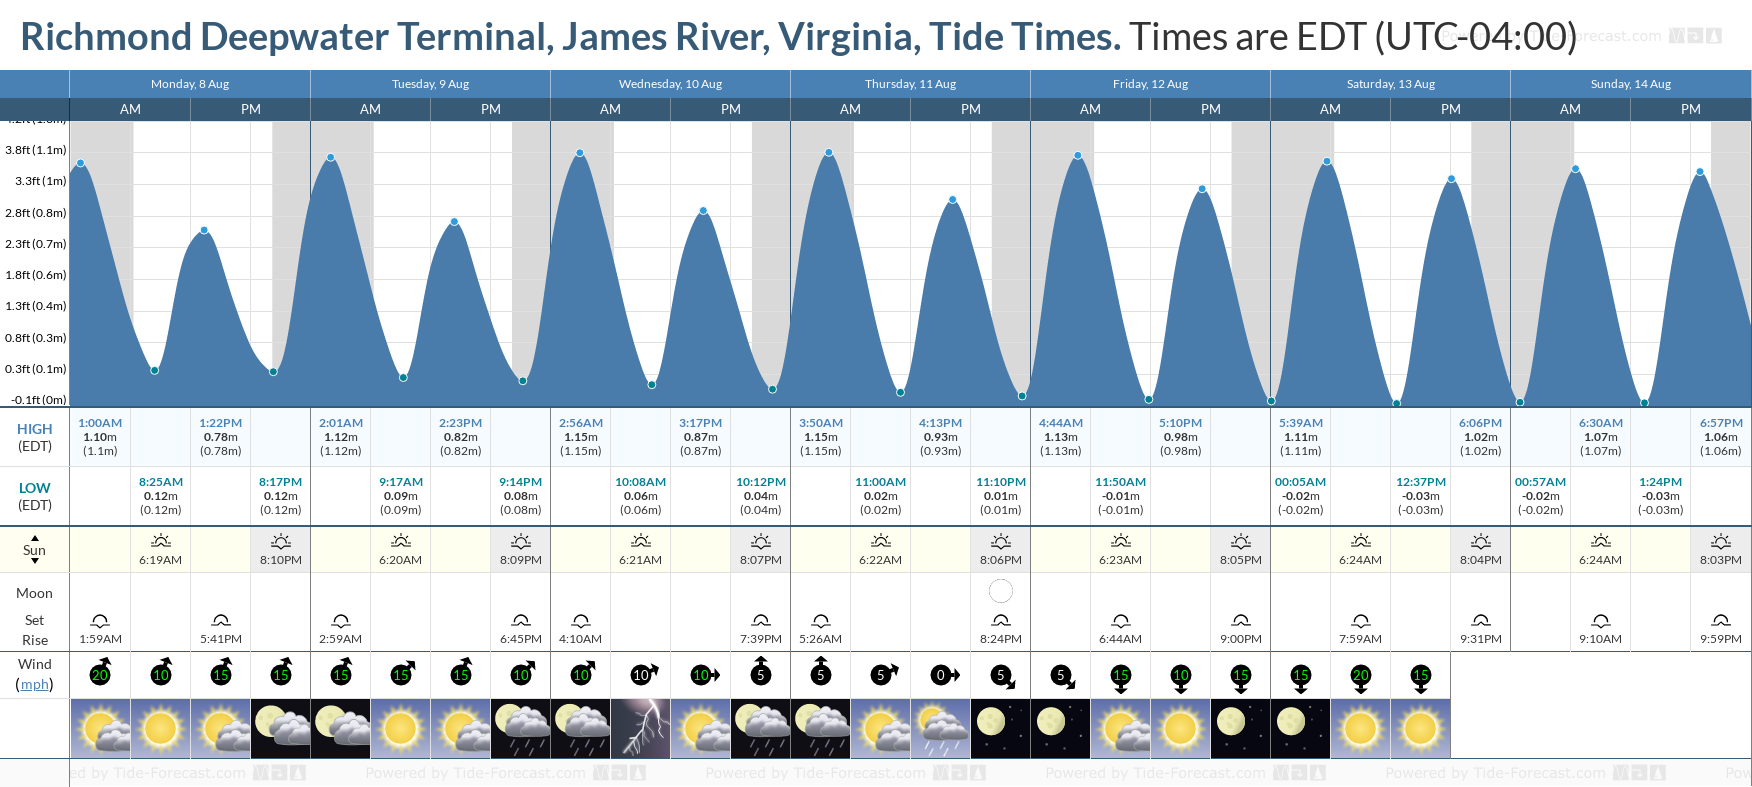 Richmond Deepwater Terminal, James River, Virginia Tide Chart including high and low tide tide times for the next 7 days